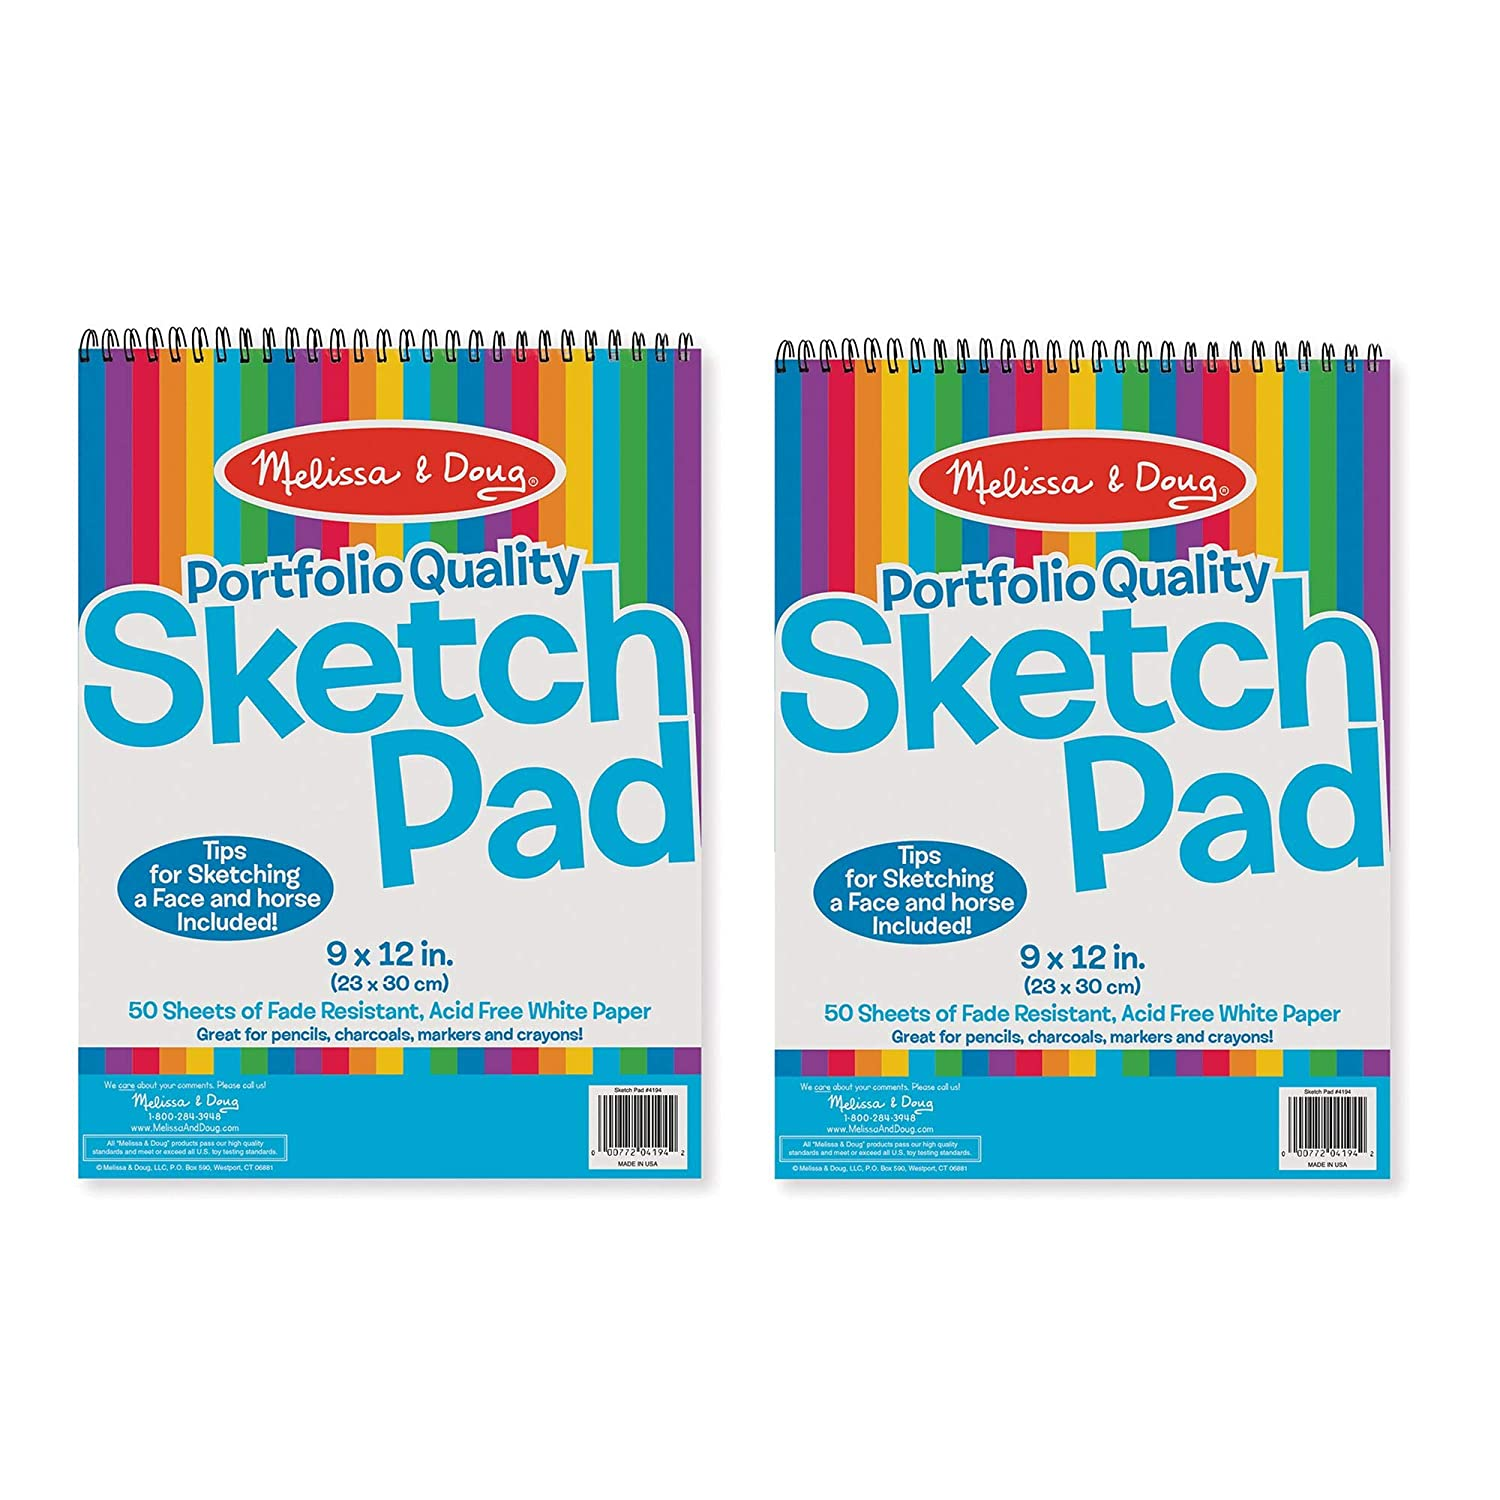 "Melissa & Doug Sketch Pad, Arts & Crafts, Fade-Resistant, Acid-Free White Paper, 50 Sheets, 2-Pack, 9"" W x 12"" L"